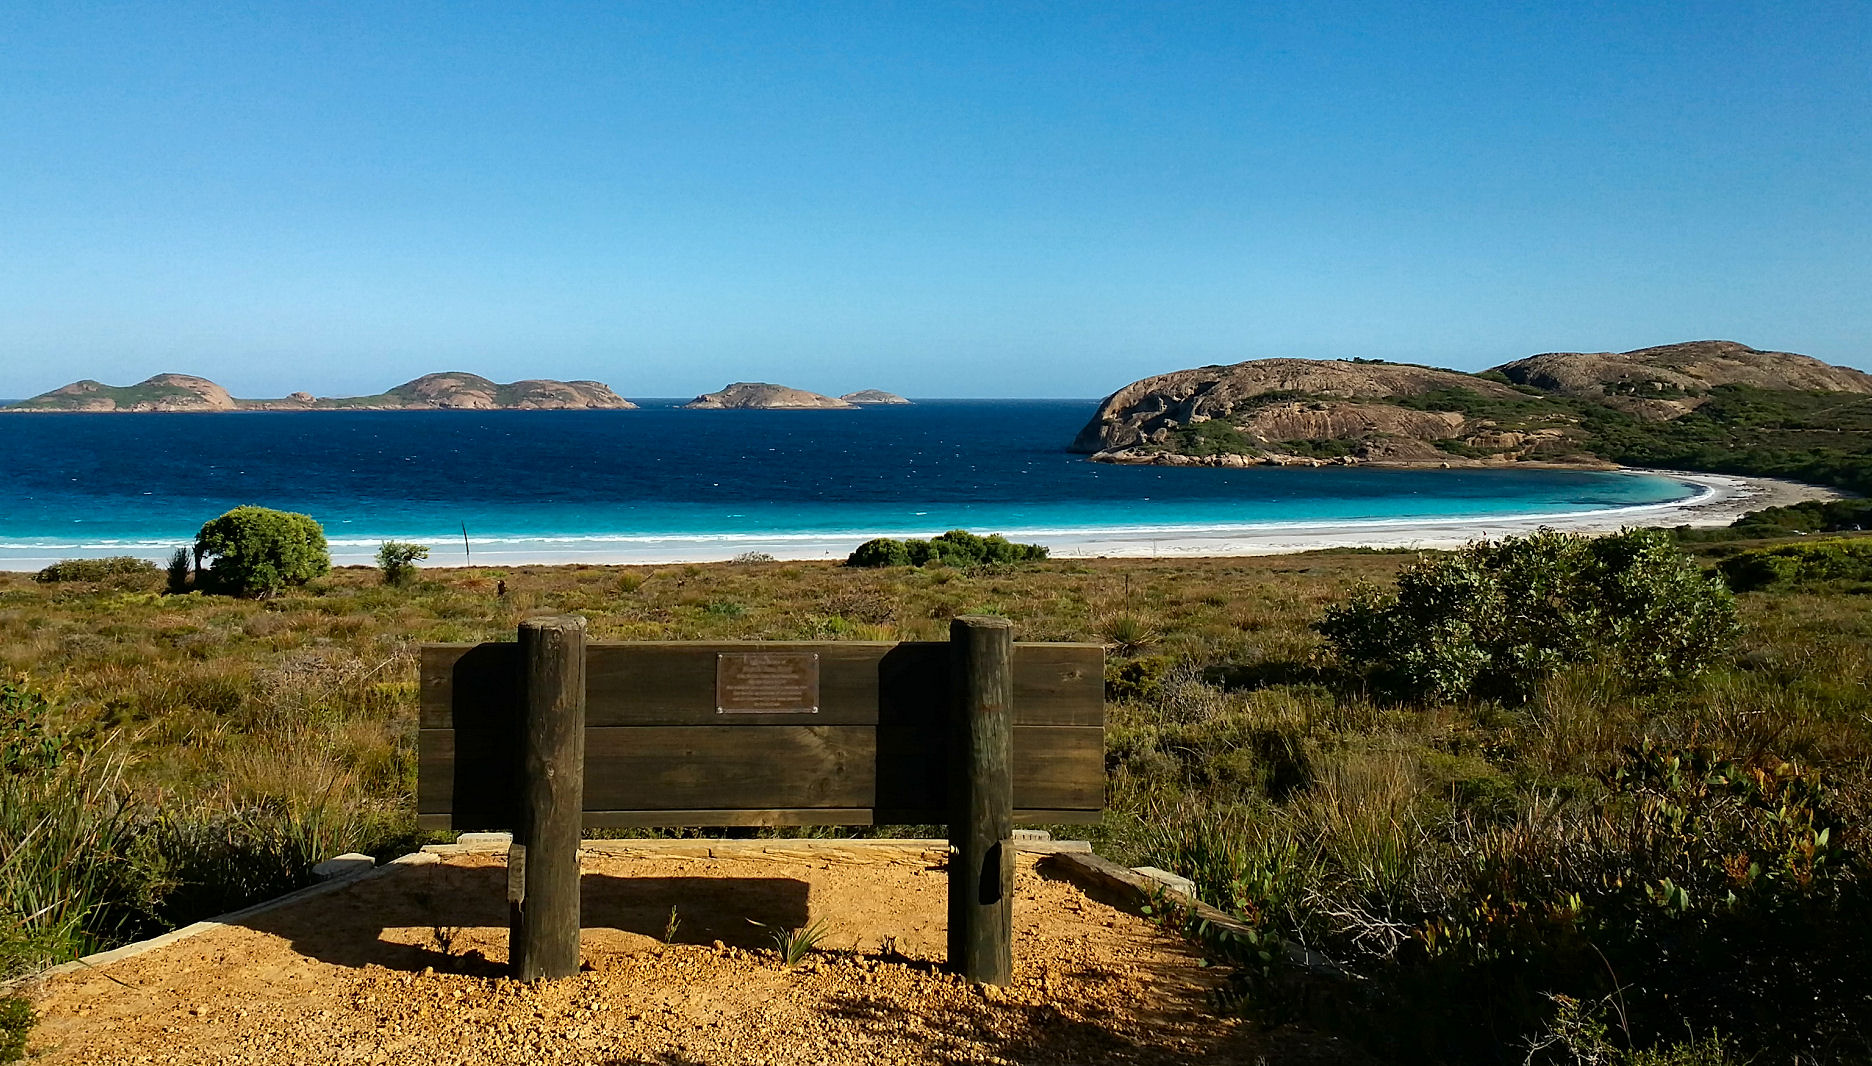 The amazing view of Lucky Bay in Cape Le Grande National Park, Esperance, Western Australia